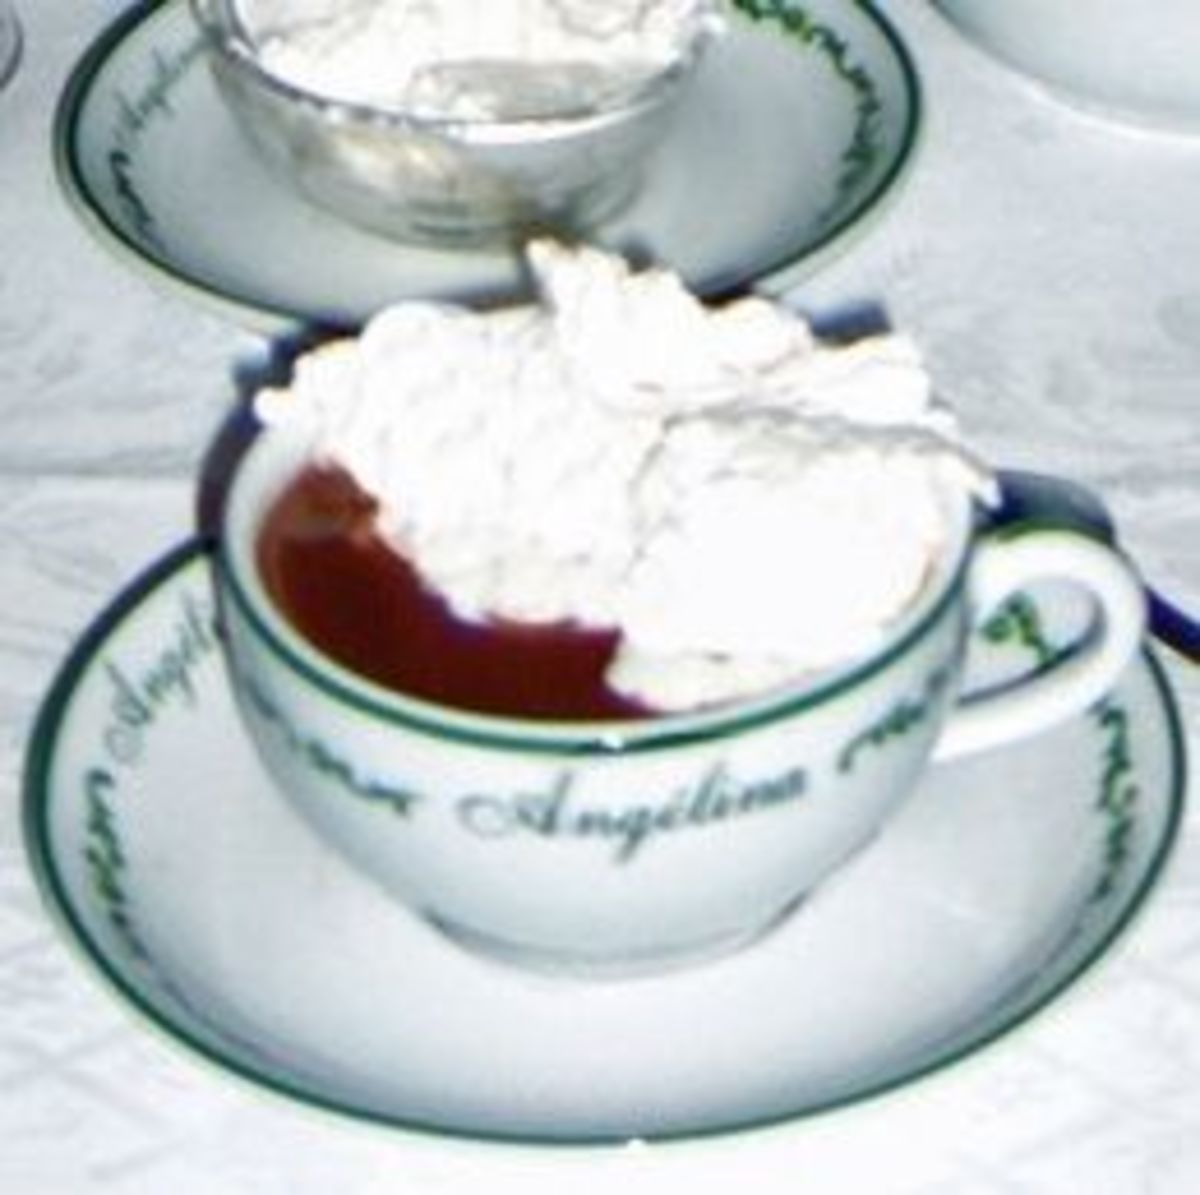 A cup of the world-famous hot chocolate l'Africain at Angelina café in Paris.